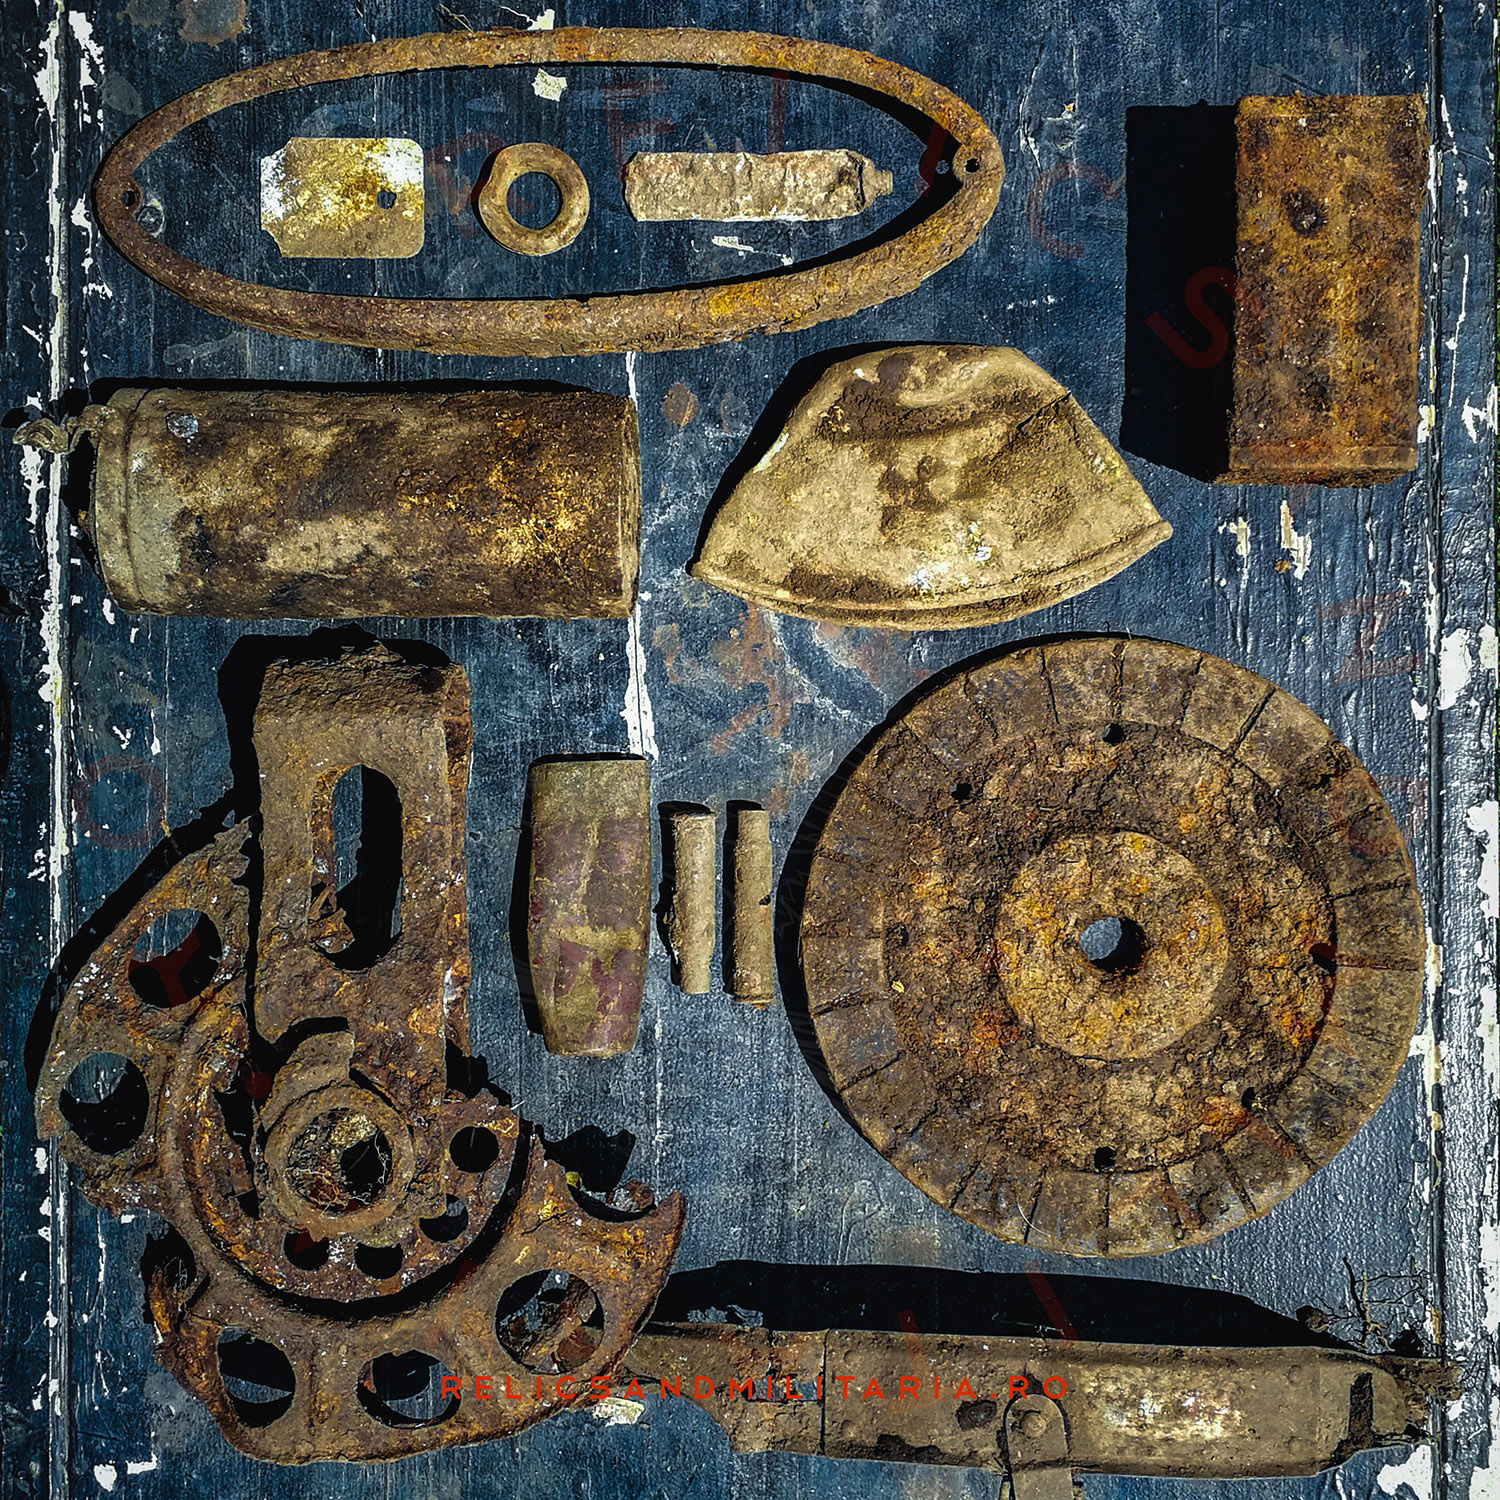 Metal detecting in Romania after Wehrmacht relics